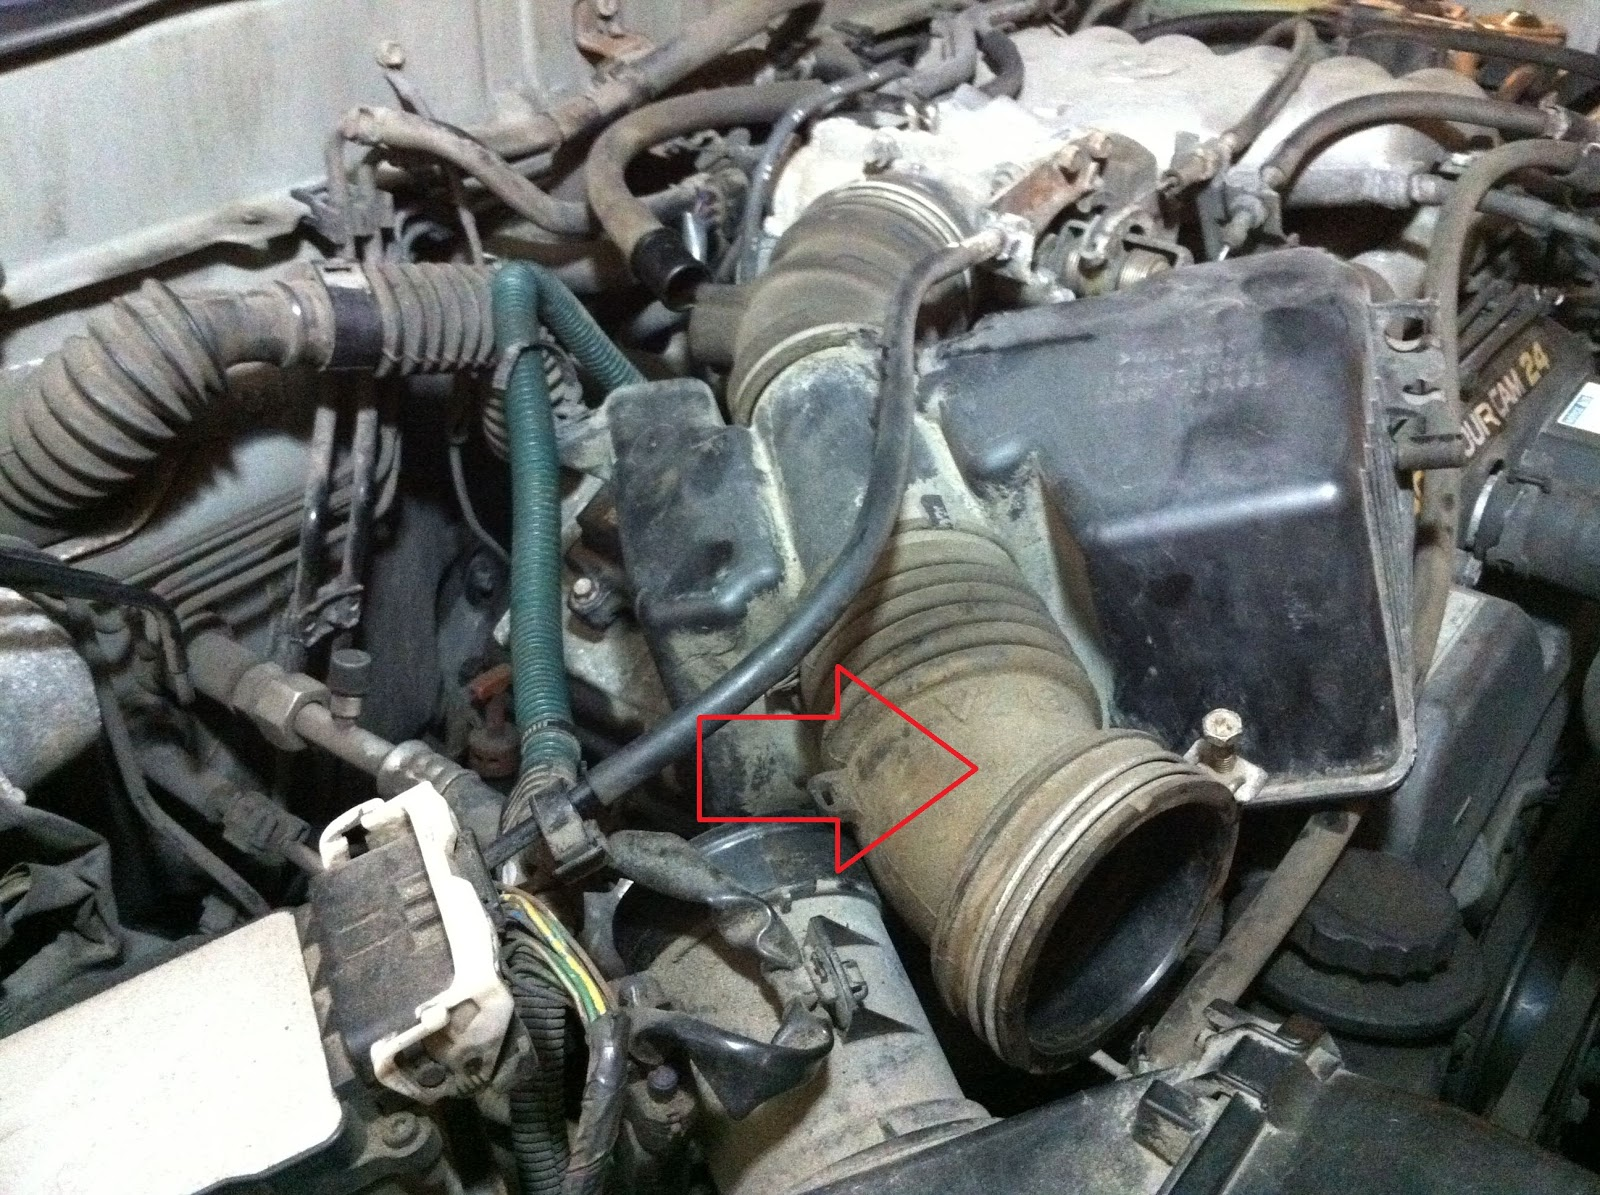 What Is The Spark Plug Wiring On A 97 Toyota 4runner